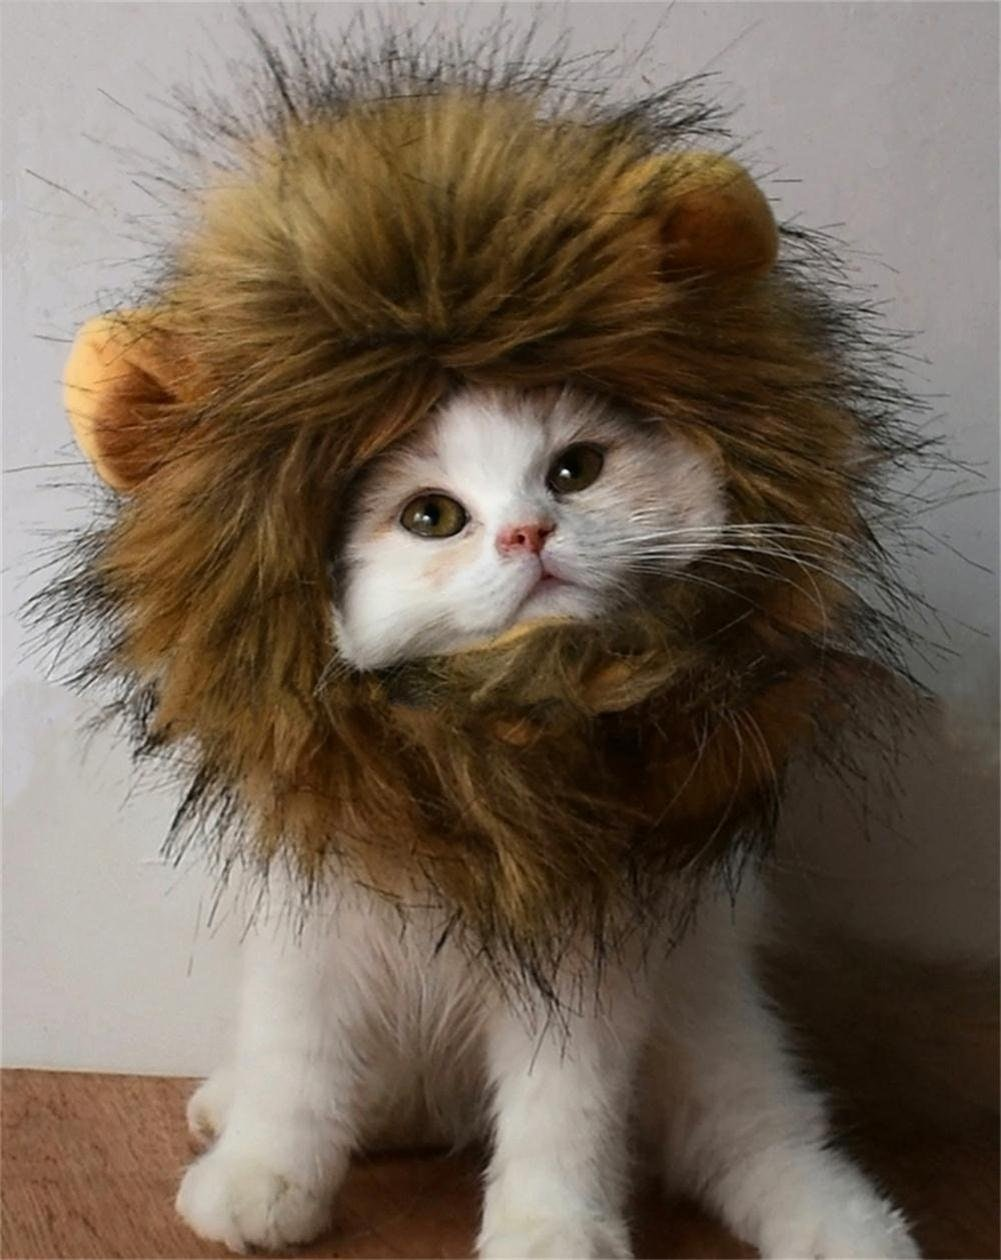 Thiscostume for kitties who think they're king of the jungle